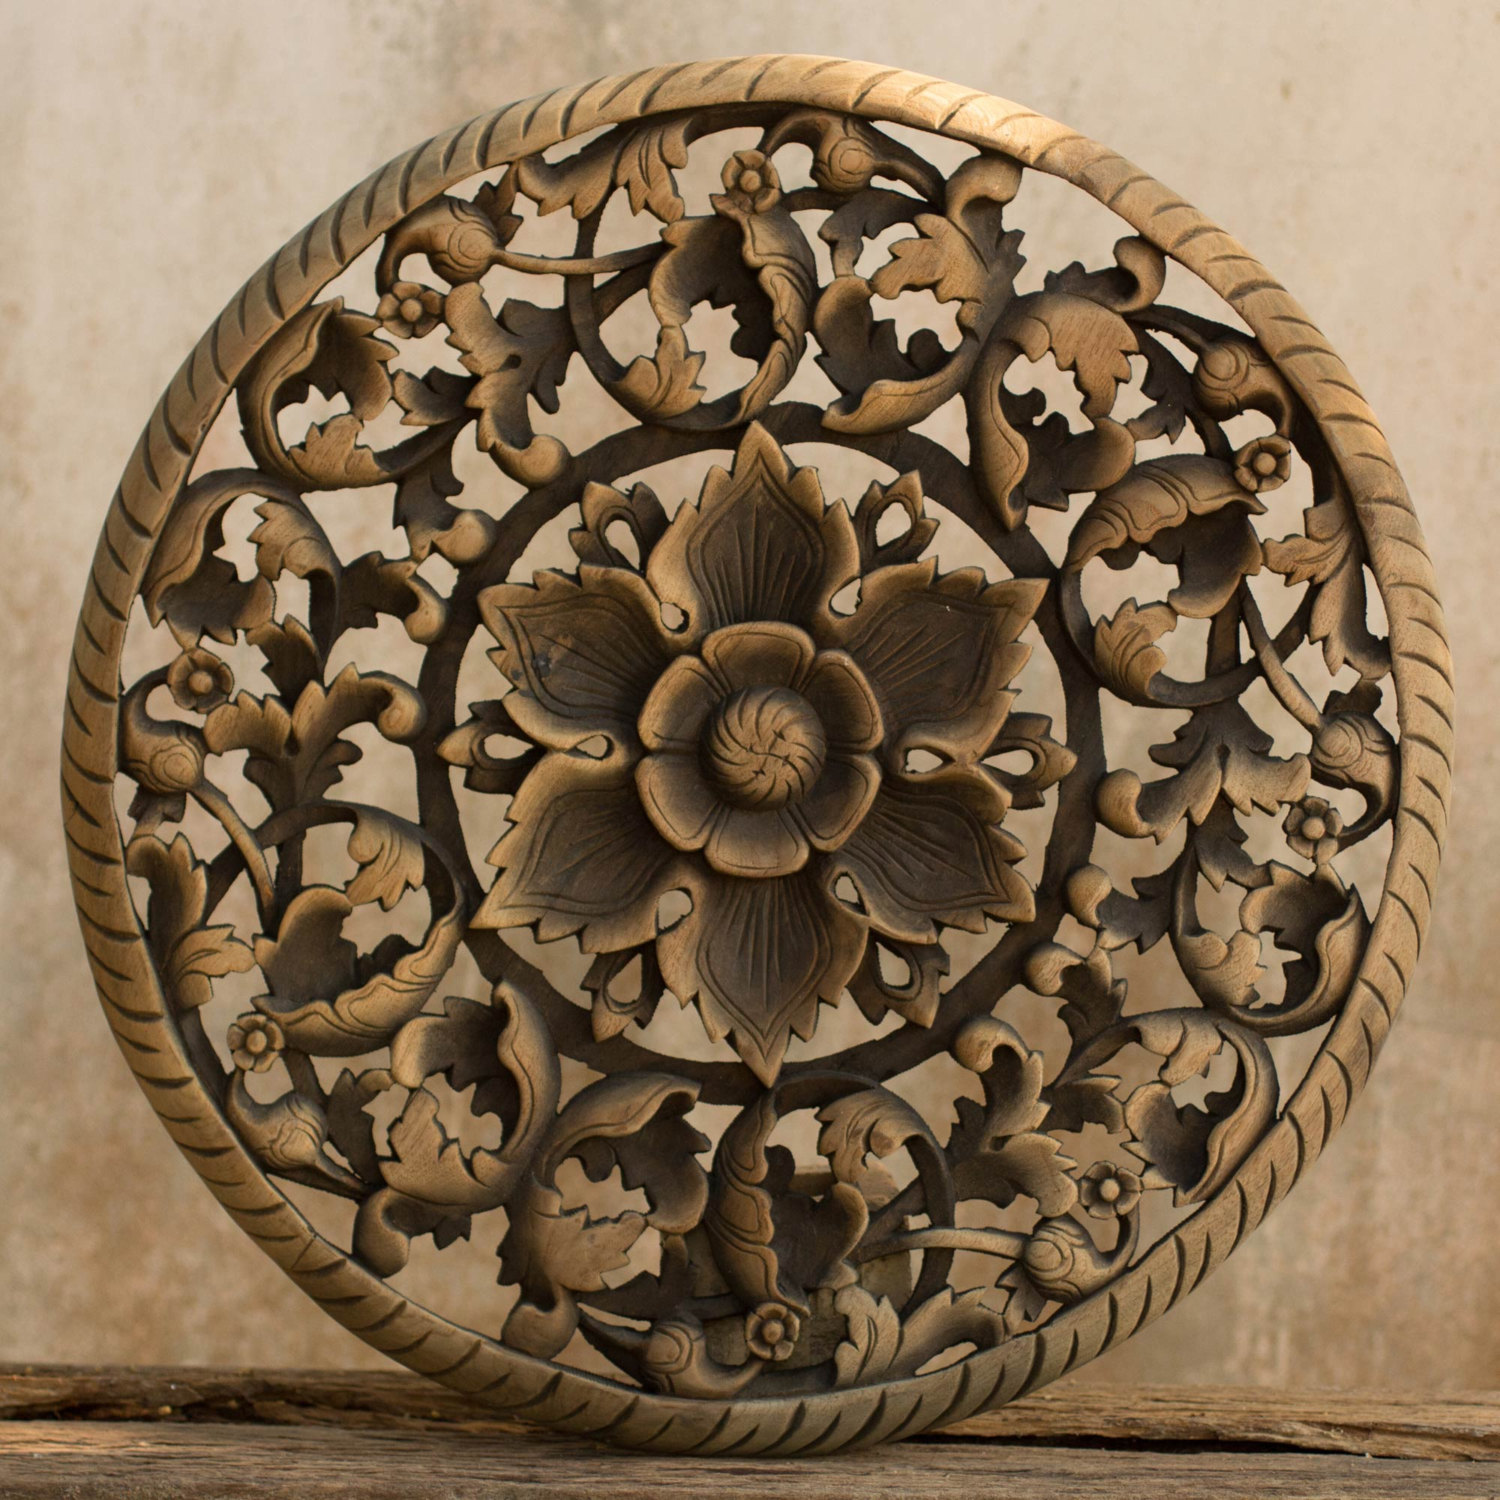 Carved Wood Wall Art Australia Buy Tree Dimensional Floral Wooden Wall Hanging Online